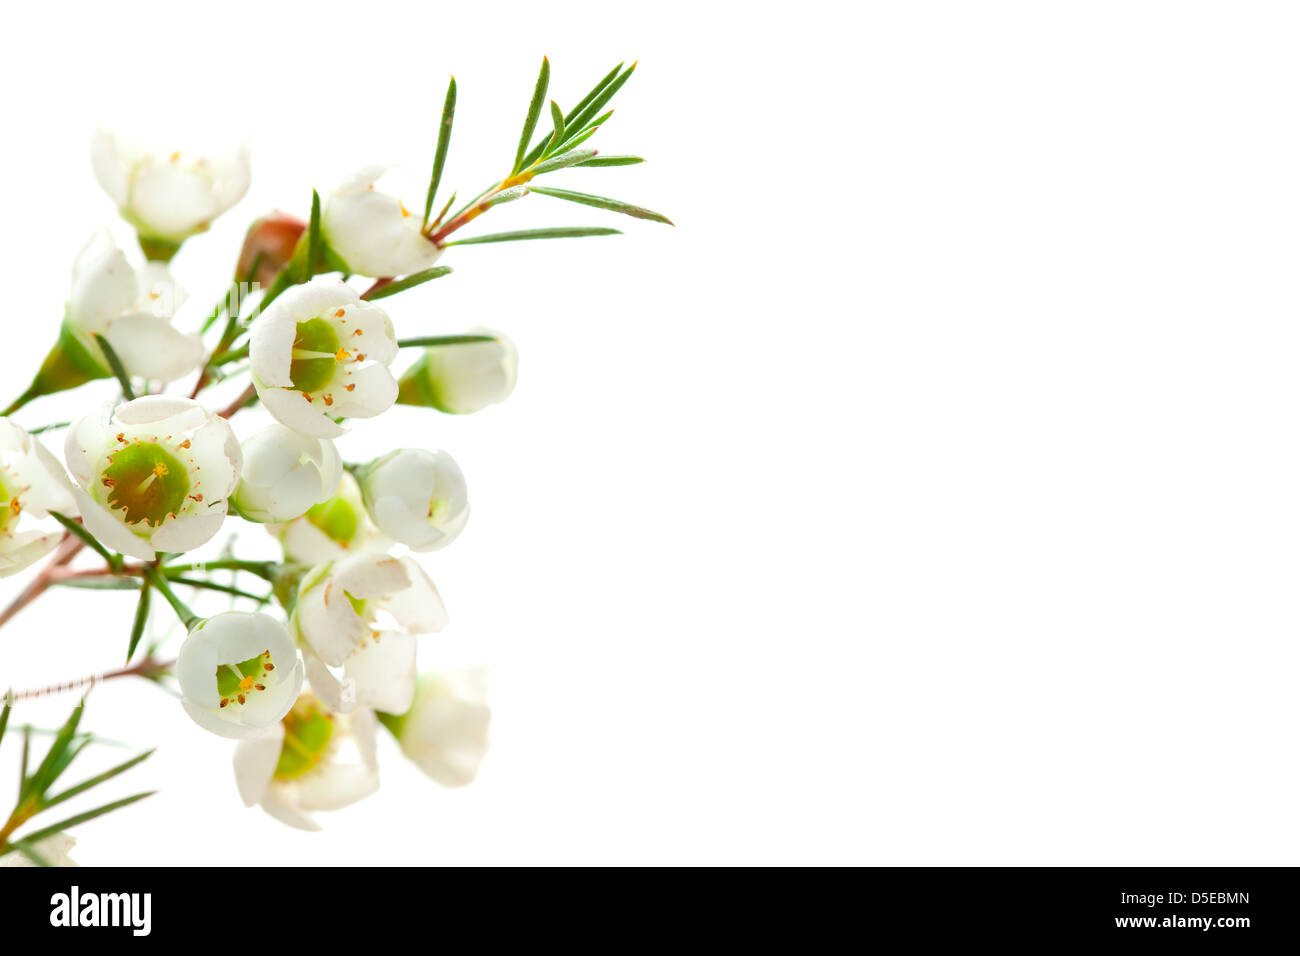 white background with flower, empty space on right for text - Stock Image